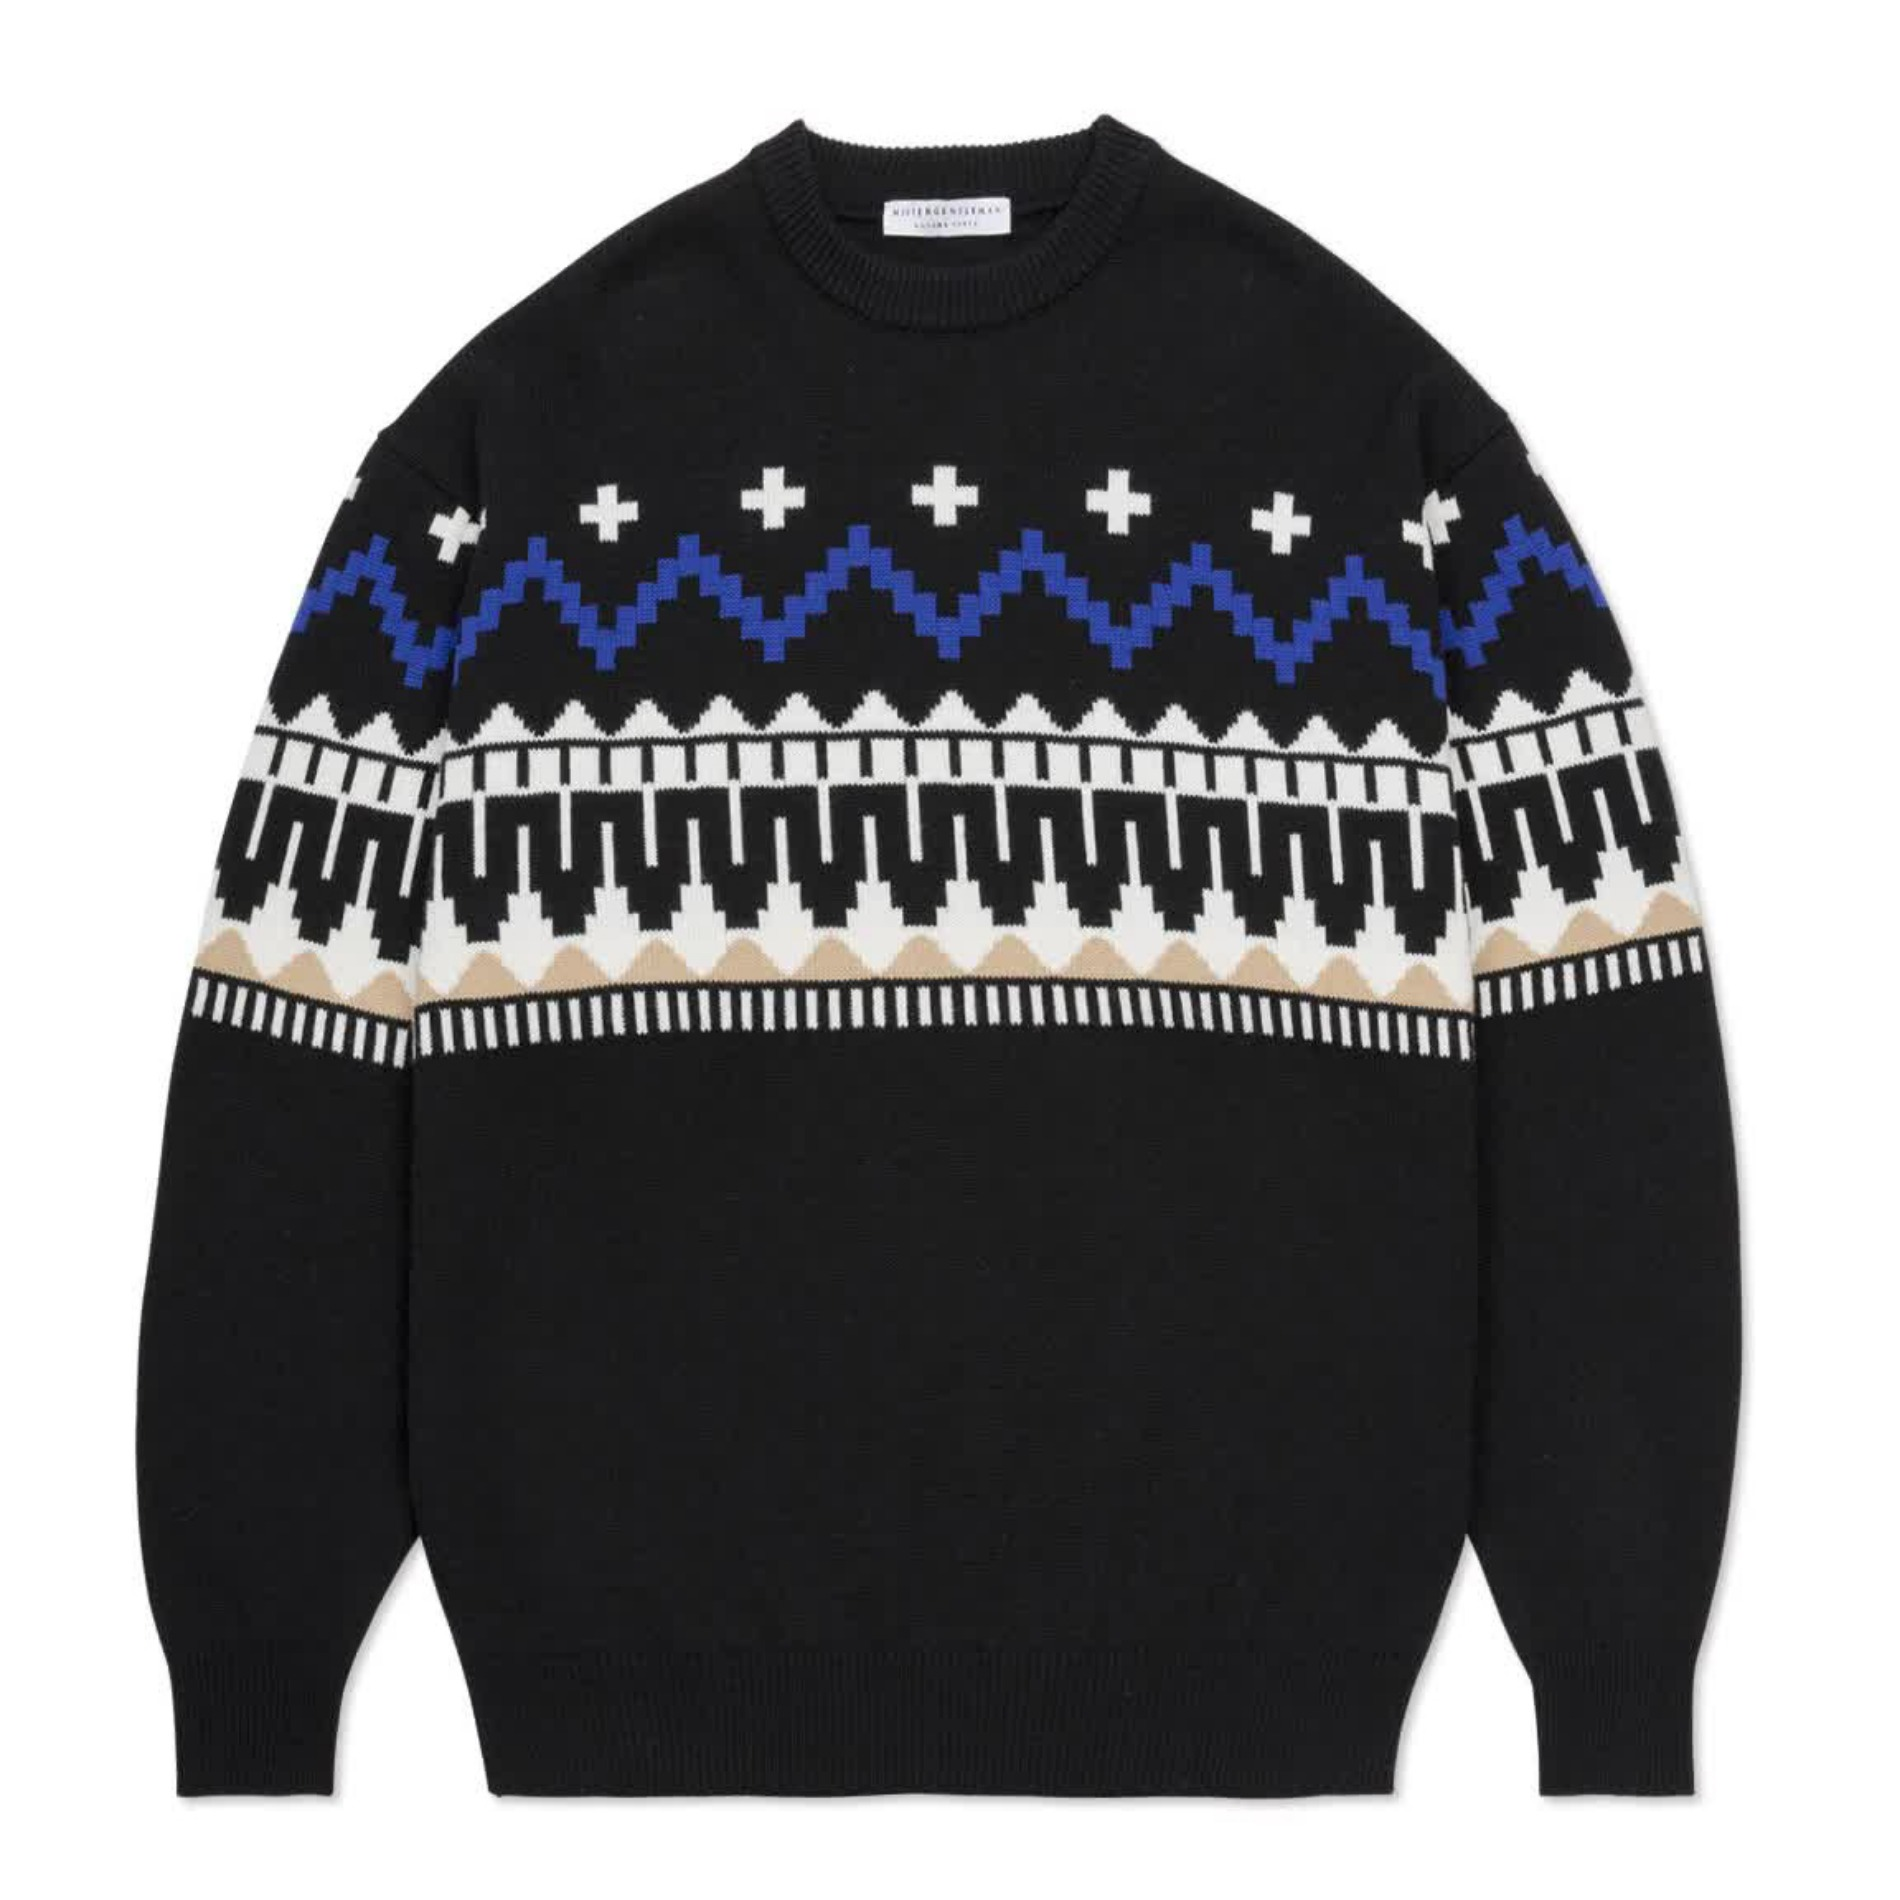 AW20 MISTER GENTLEMAN FAIR ISLE KNIT BLACK